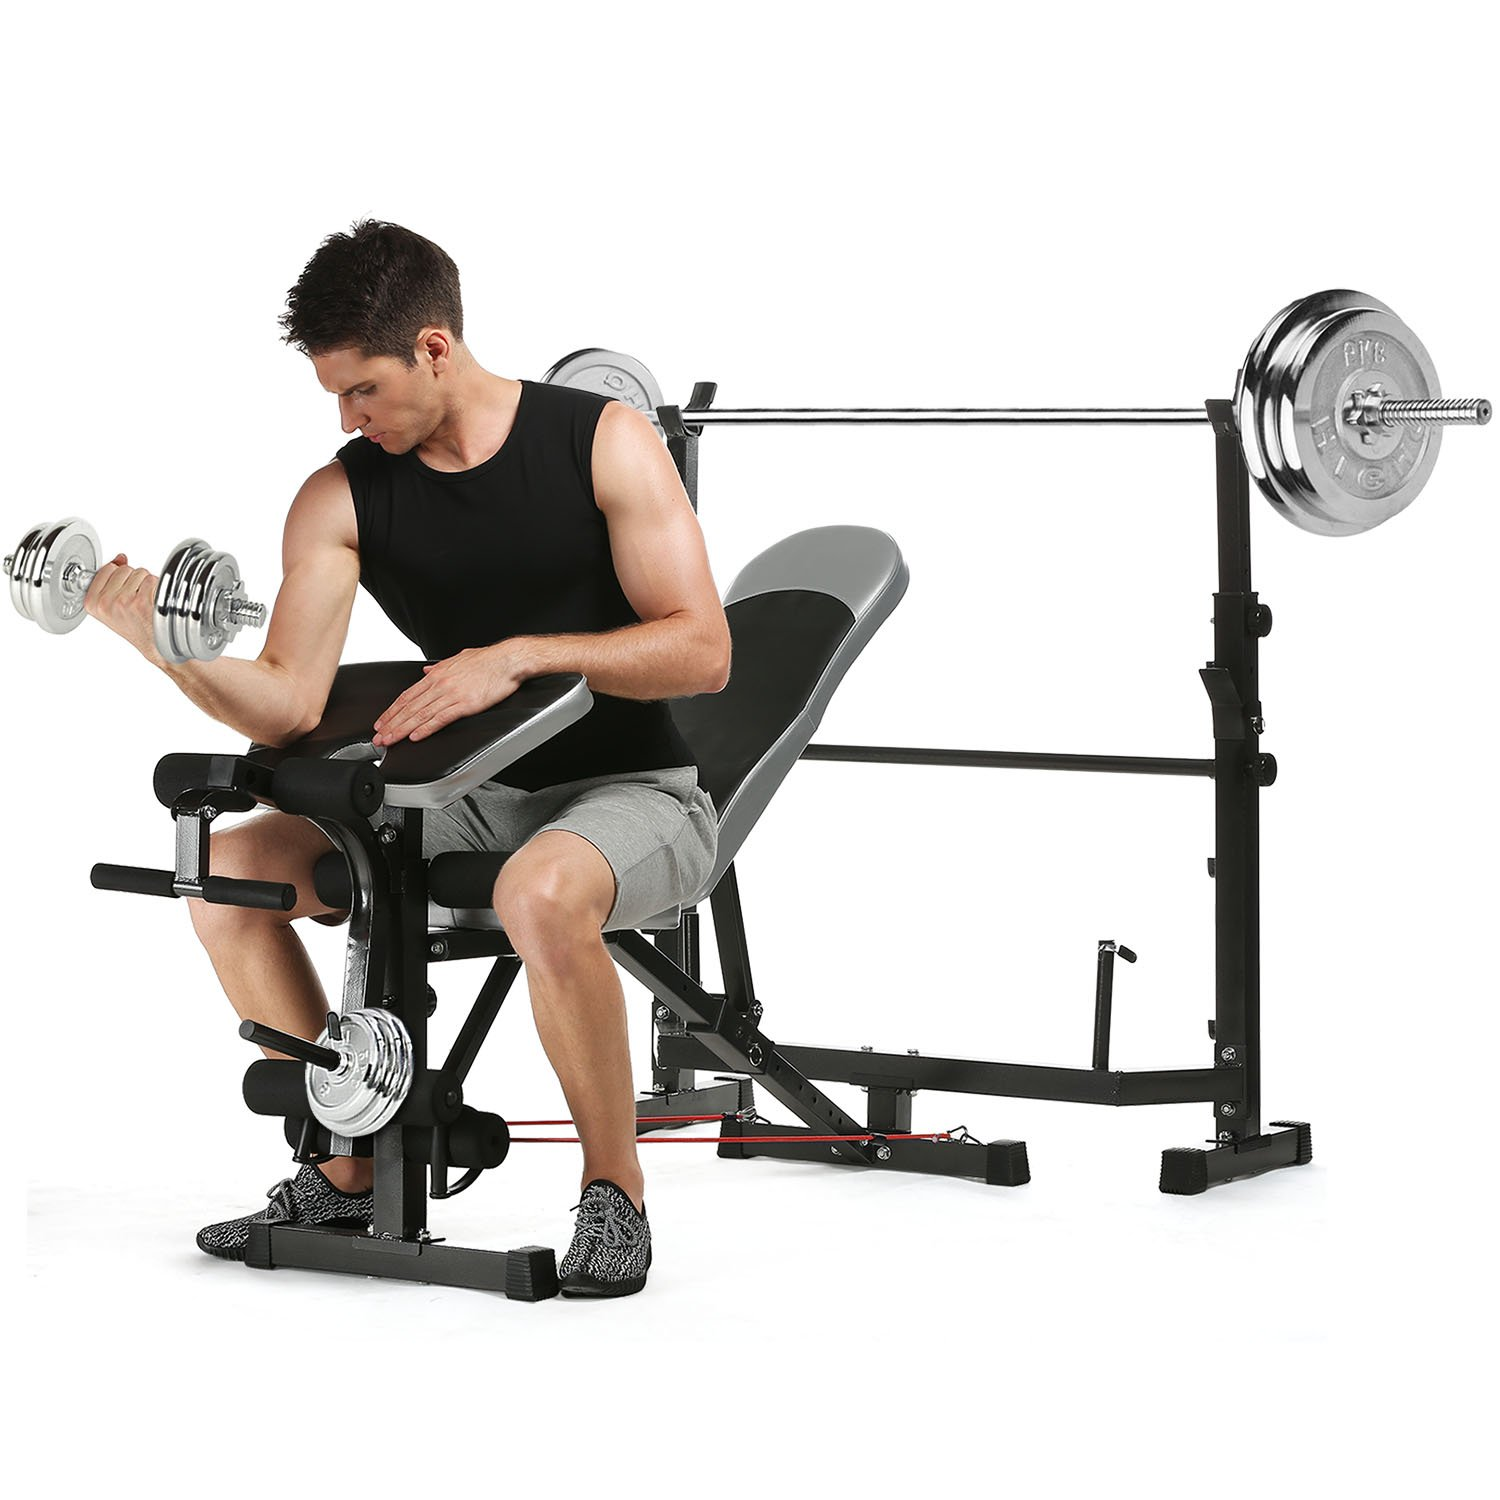 Ancheer Weight Bench Adjustable Sit Up Bench Incline Decline Workout AB Bench (black) by ANCHEER